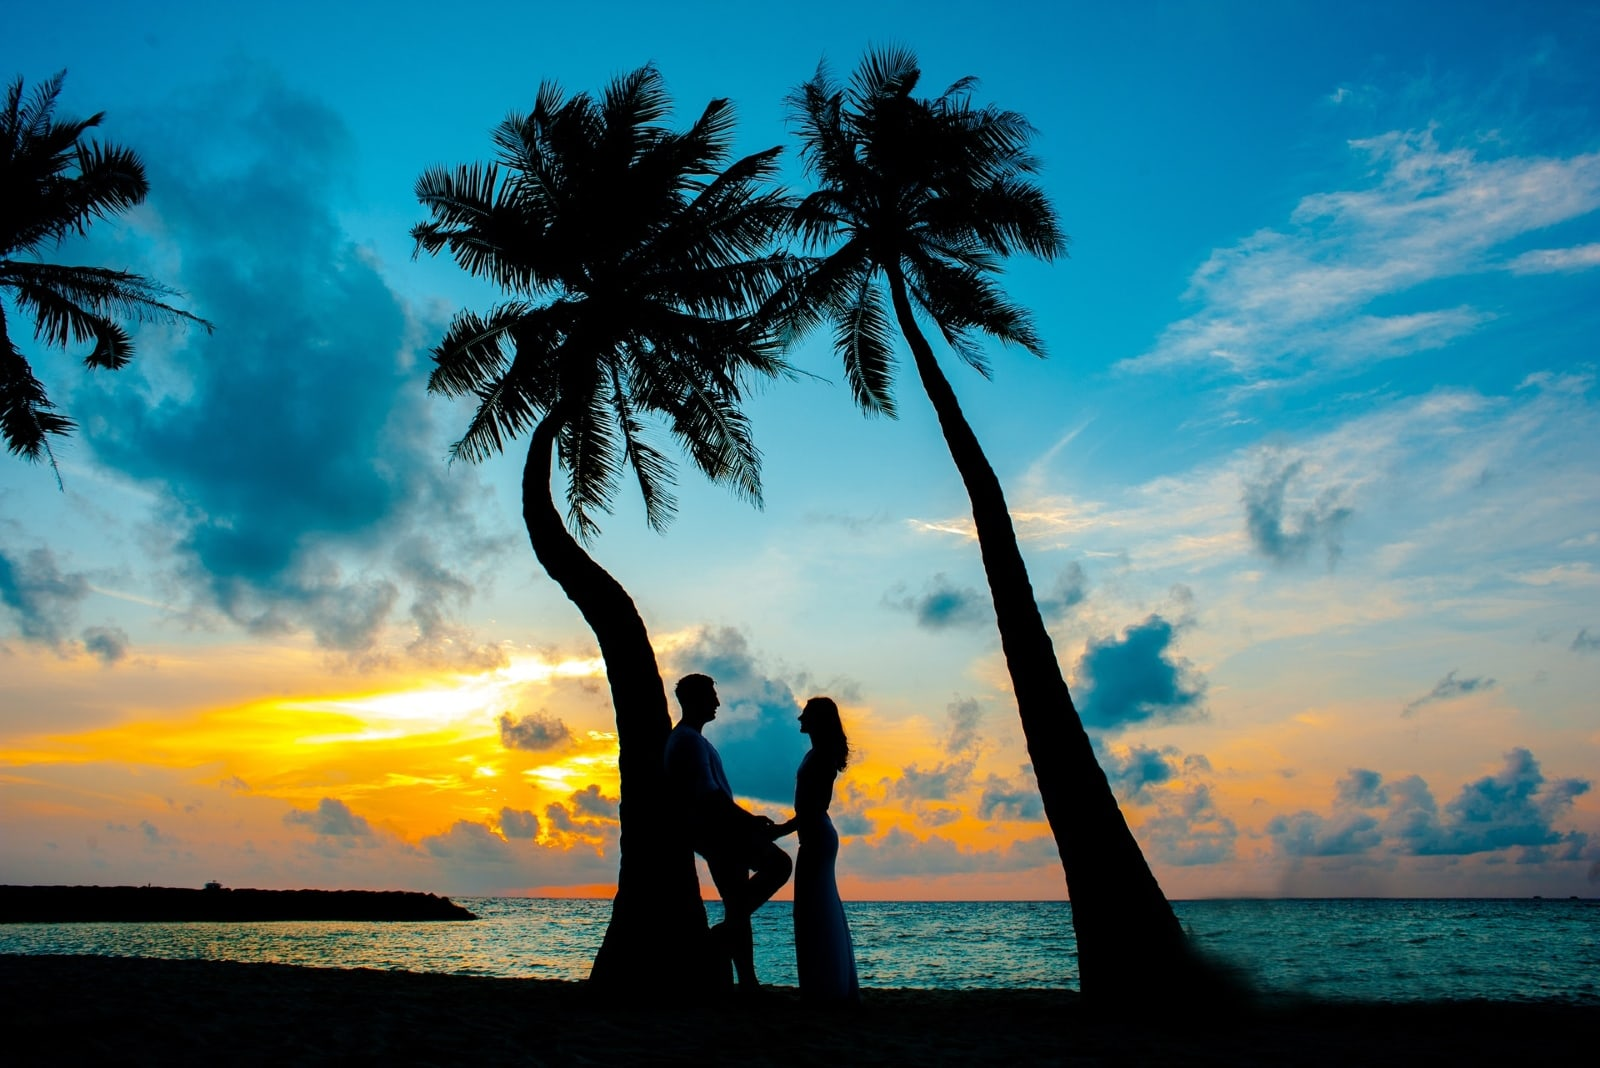 man and woman holding hands while standing under palm tree